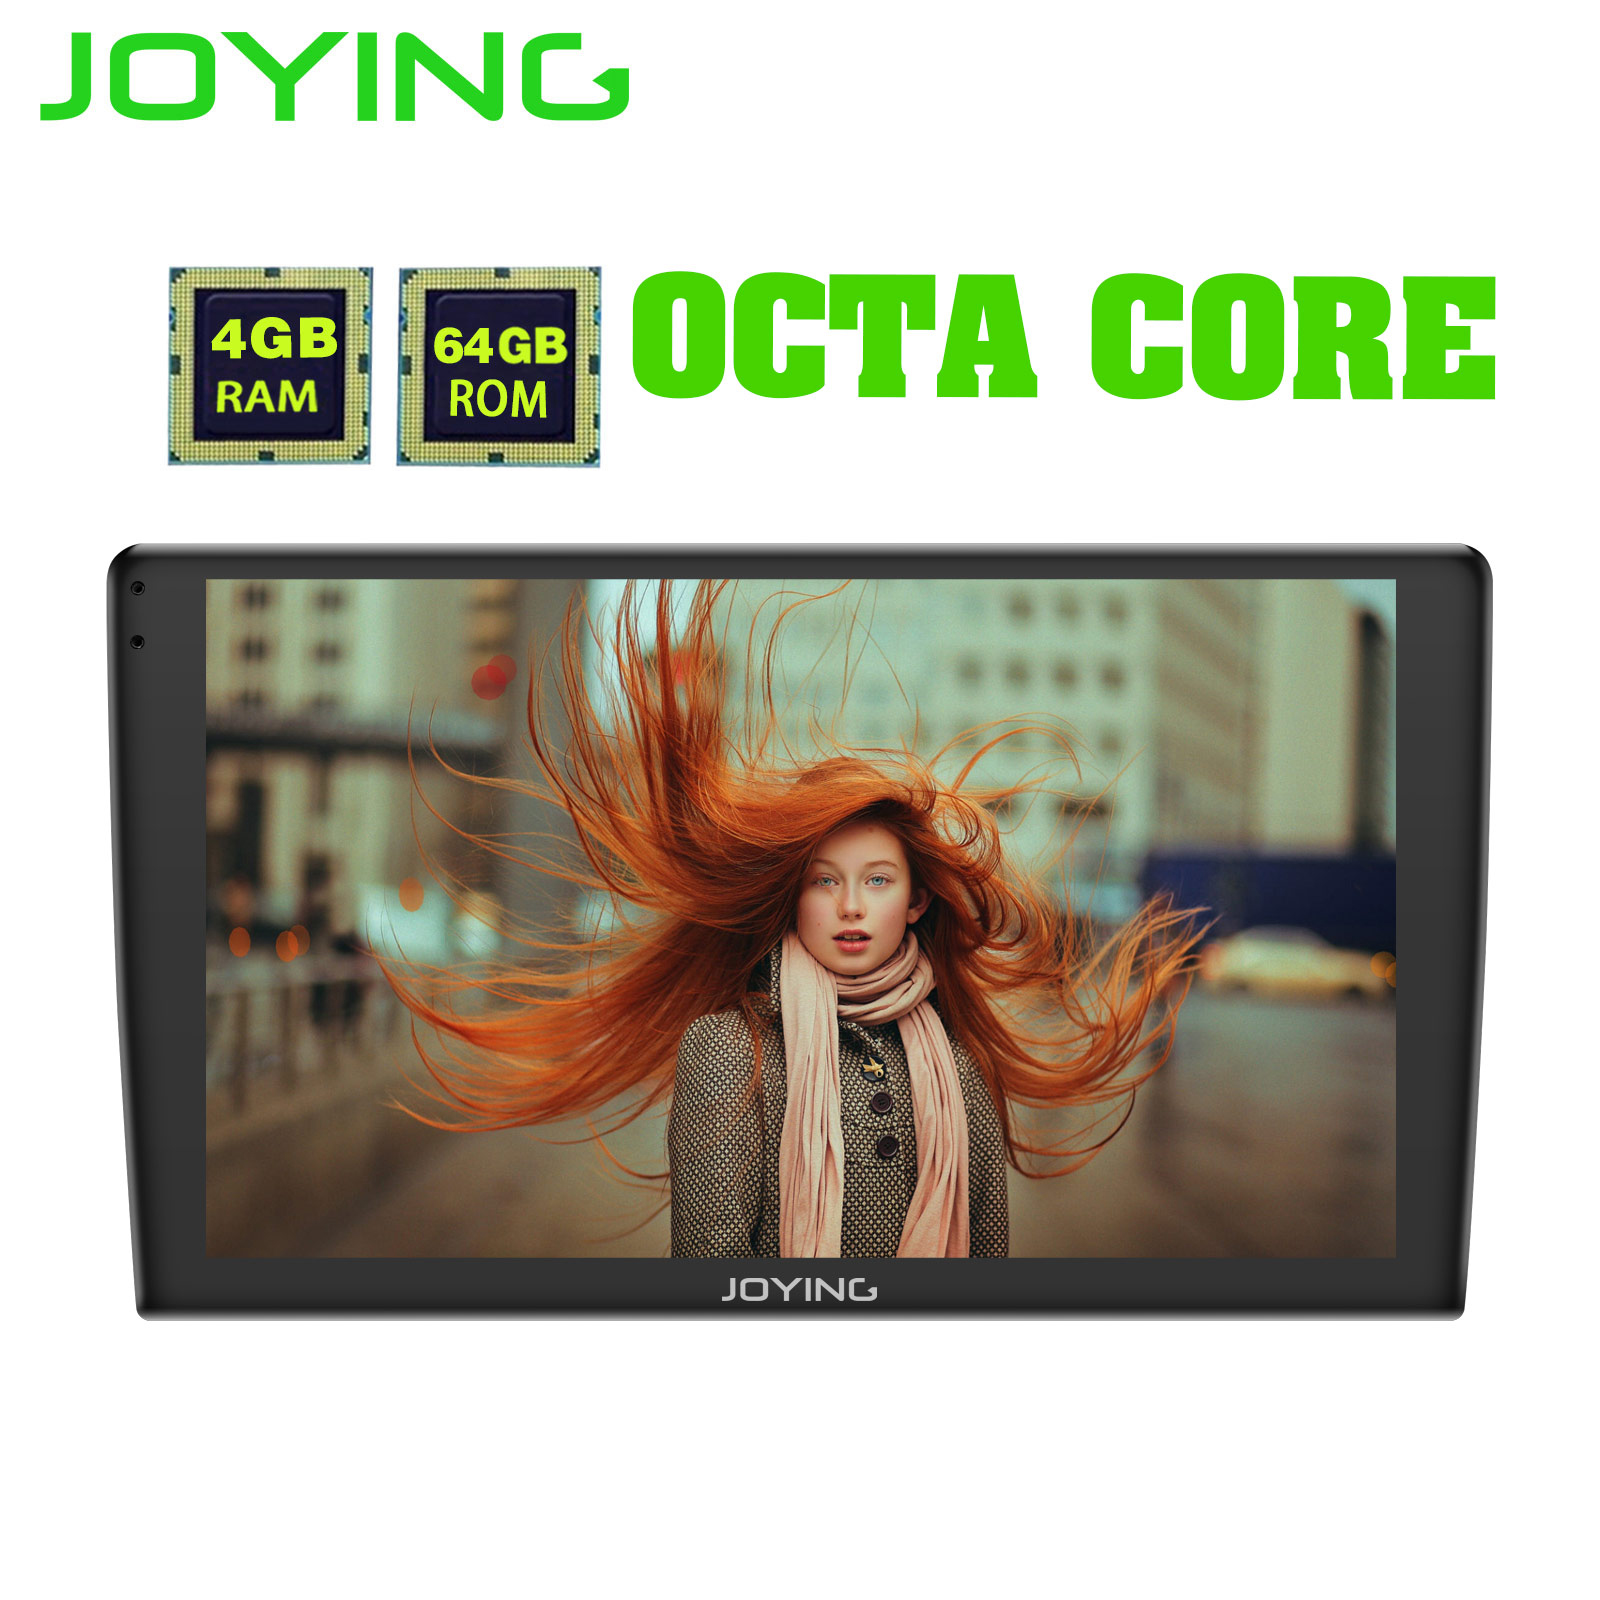 JOYING 9 2 5D IPS 1 din 4 64GB Android 8 1 car radio player stereo